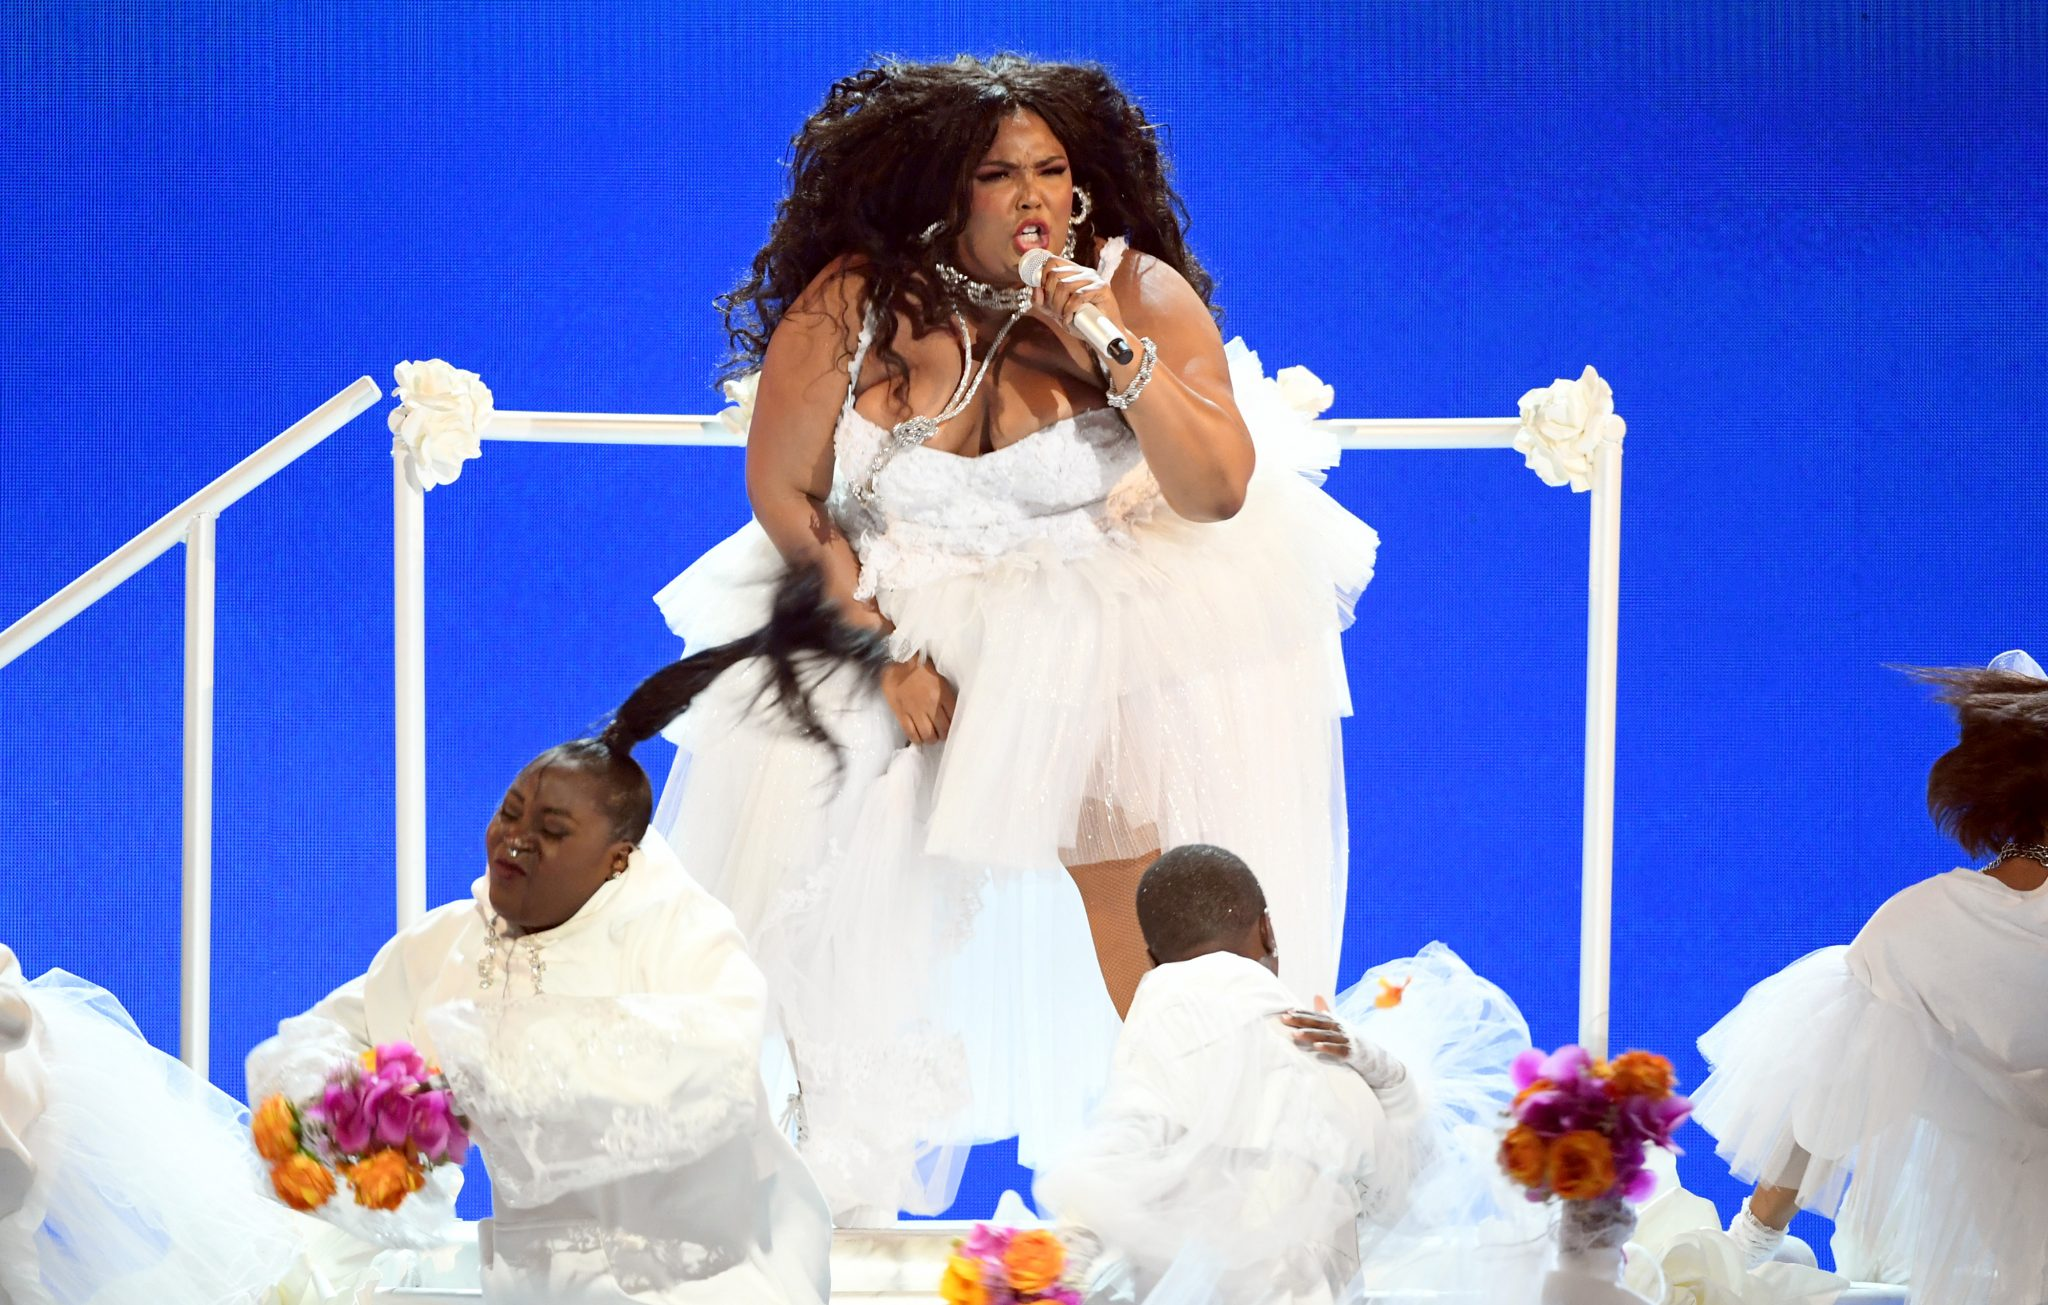 Lizzo got a standing ovation from Rihanna after her 'Truth Hurts